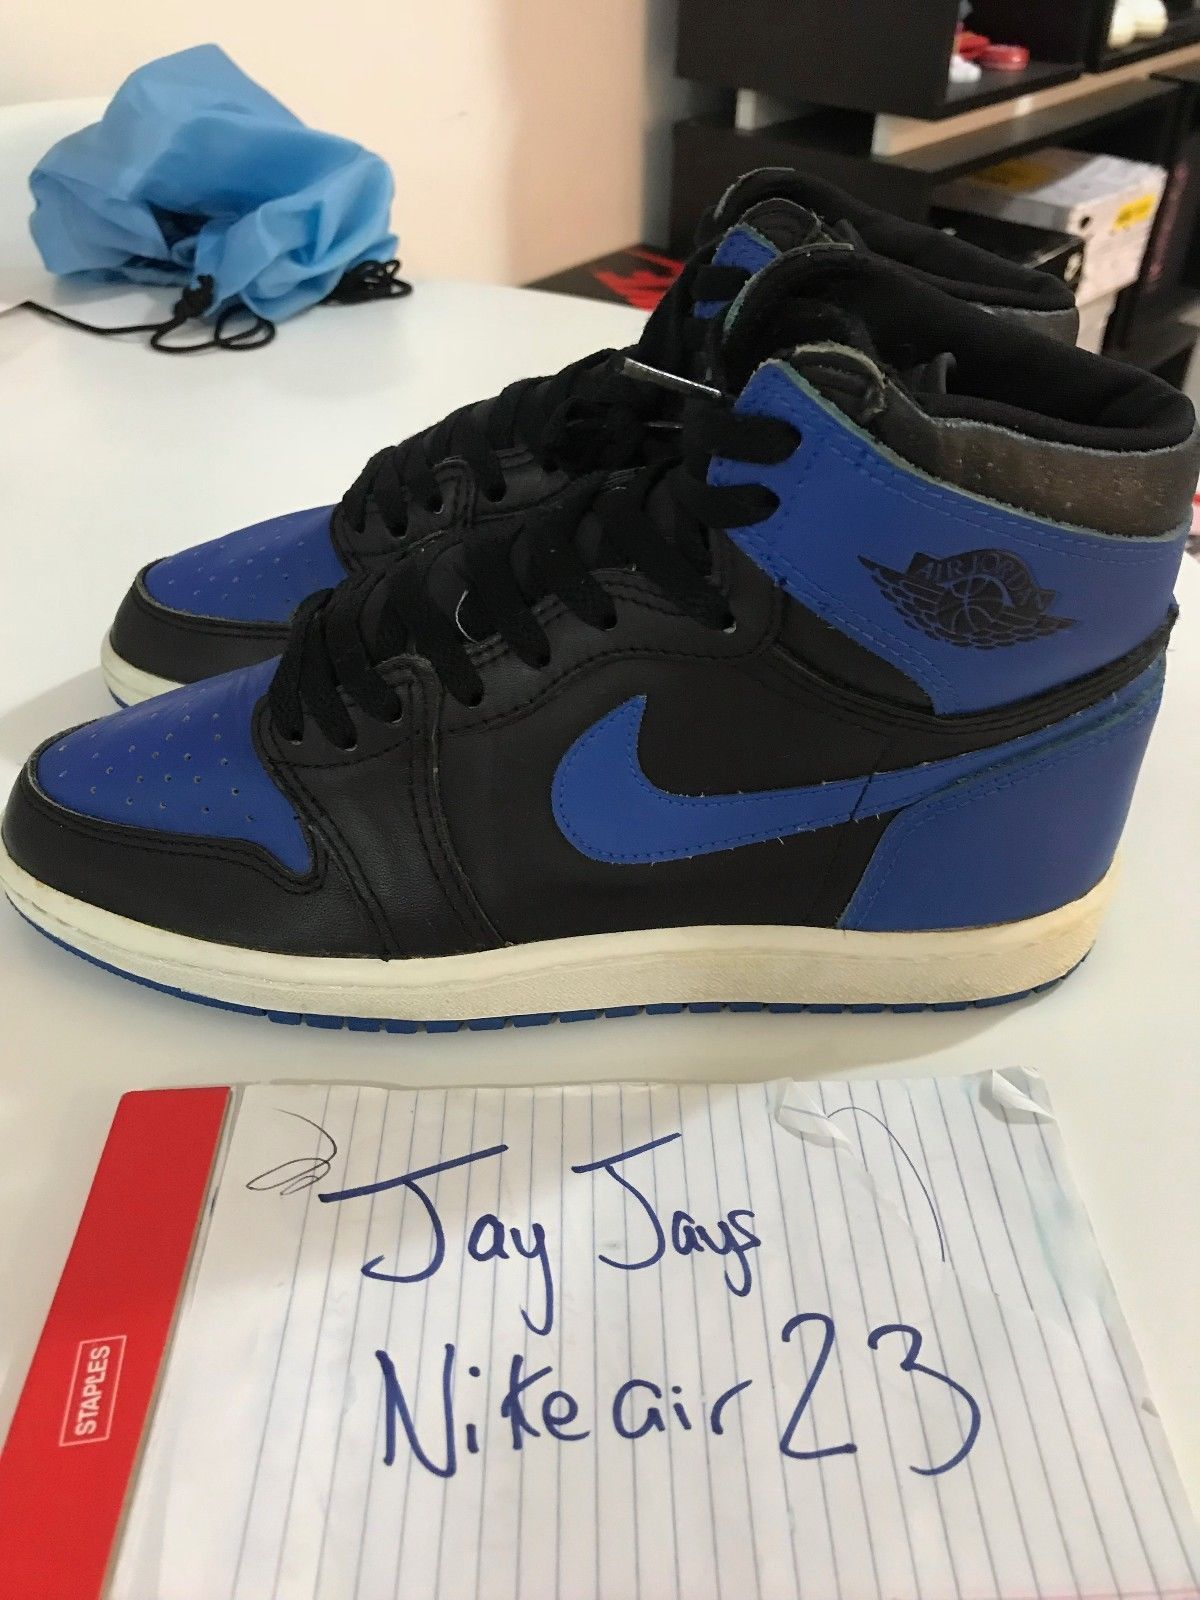 2a2c52f72dd Details about 2017 Nike Air Jordan1 Retro High OG Royal Blue Size 8 ...